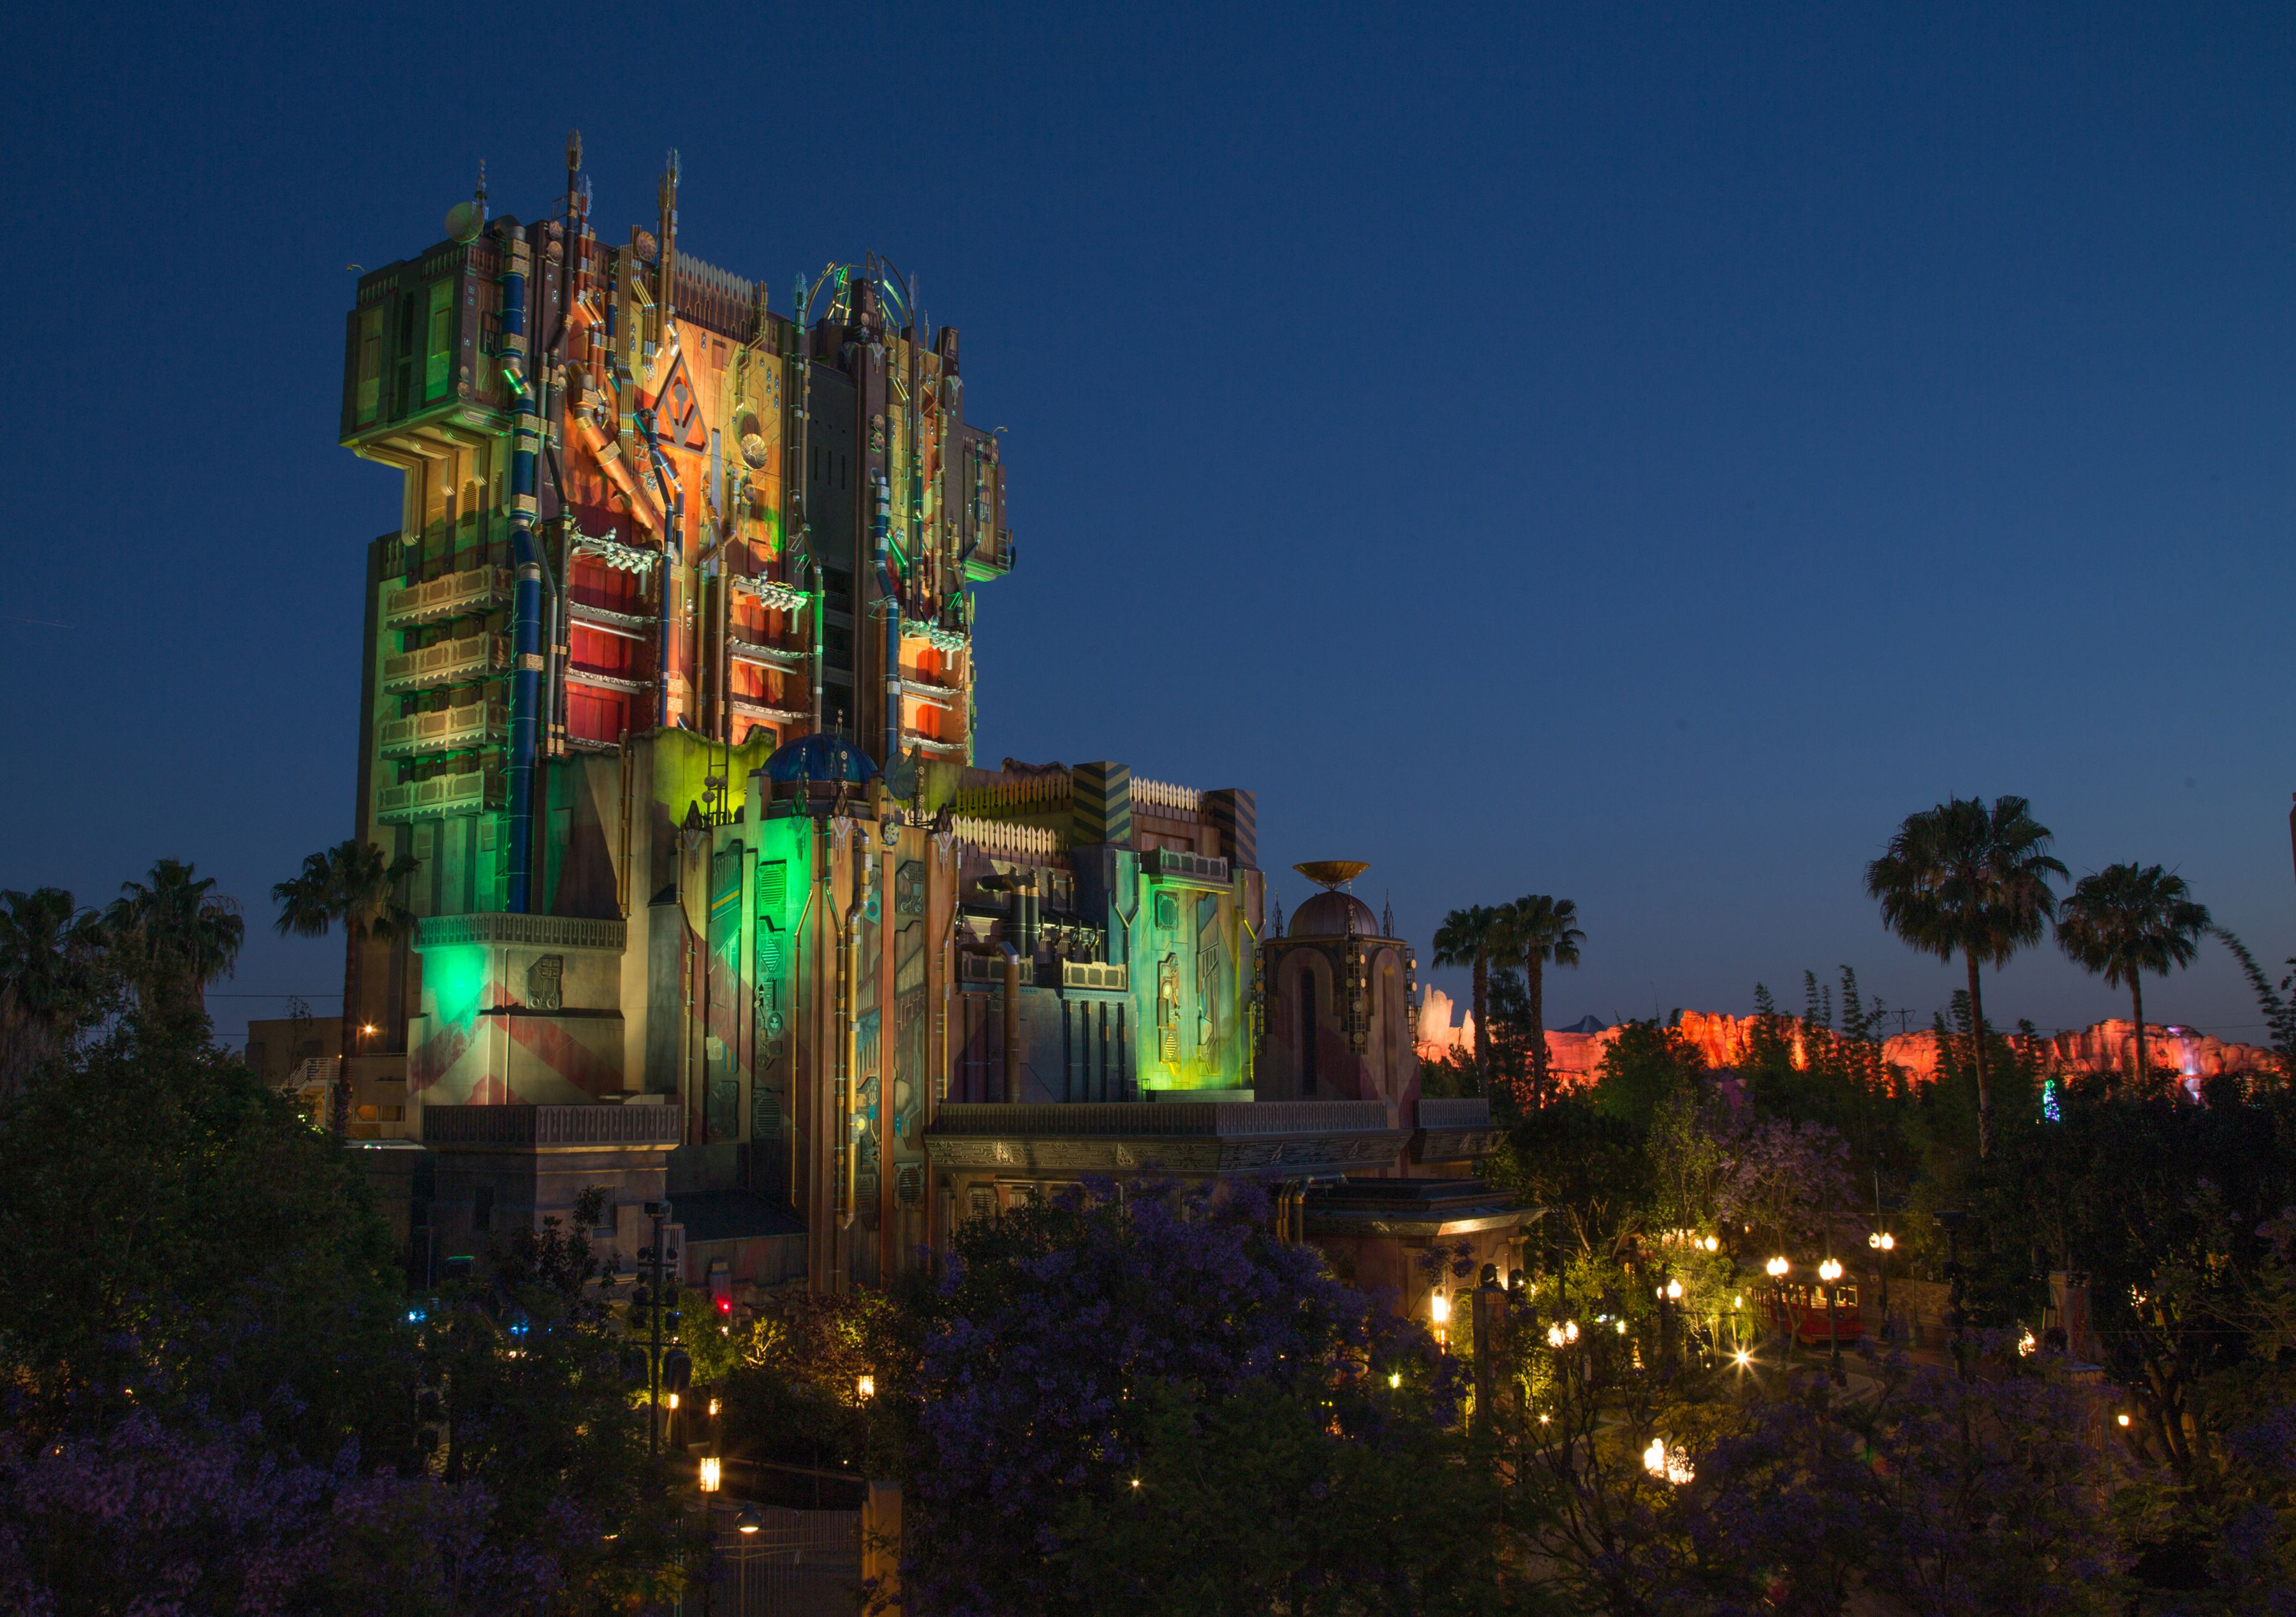 Guardians of the Galaxy – Mission: Breakout ride at Disney California Adventure